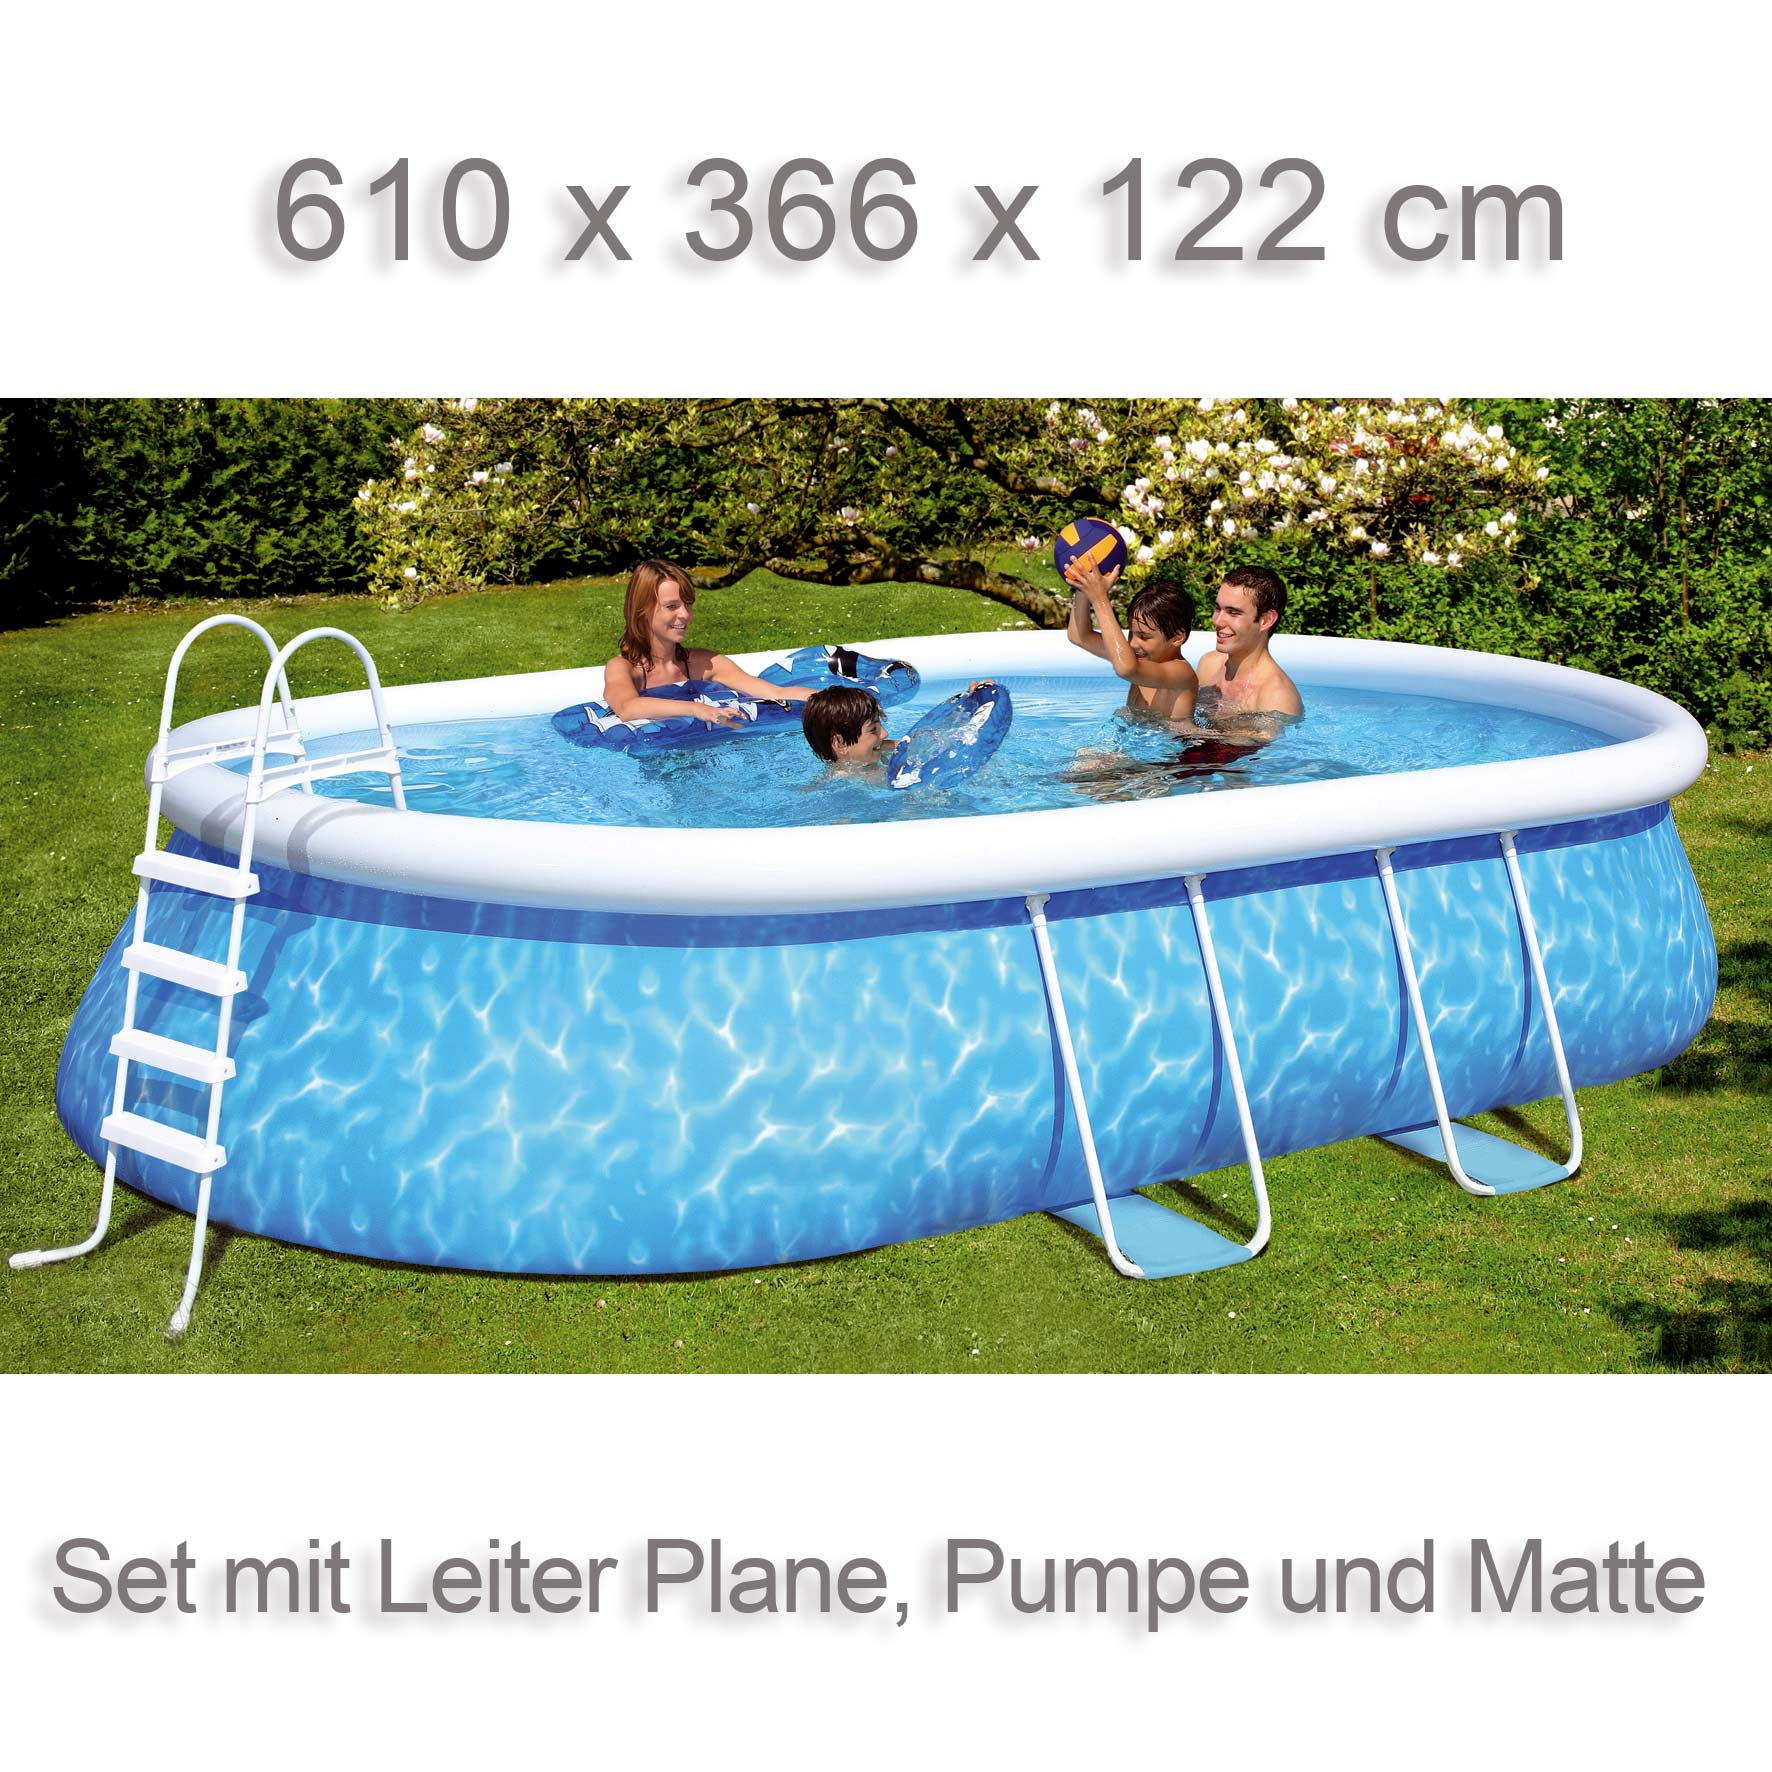 Quick up pool manhattan 610x366x122 oval set mit leiter for Quick up pool oval